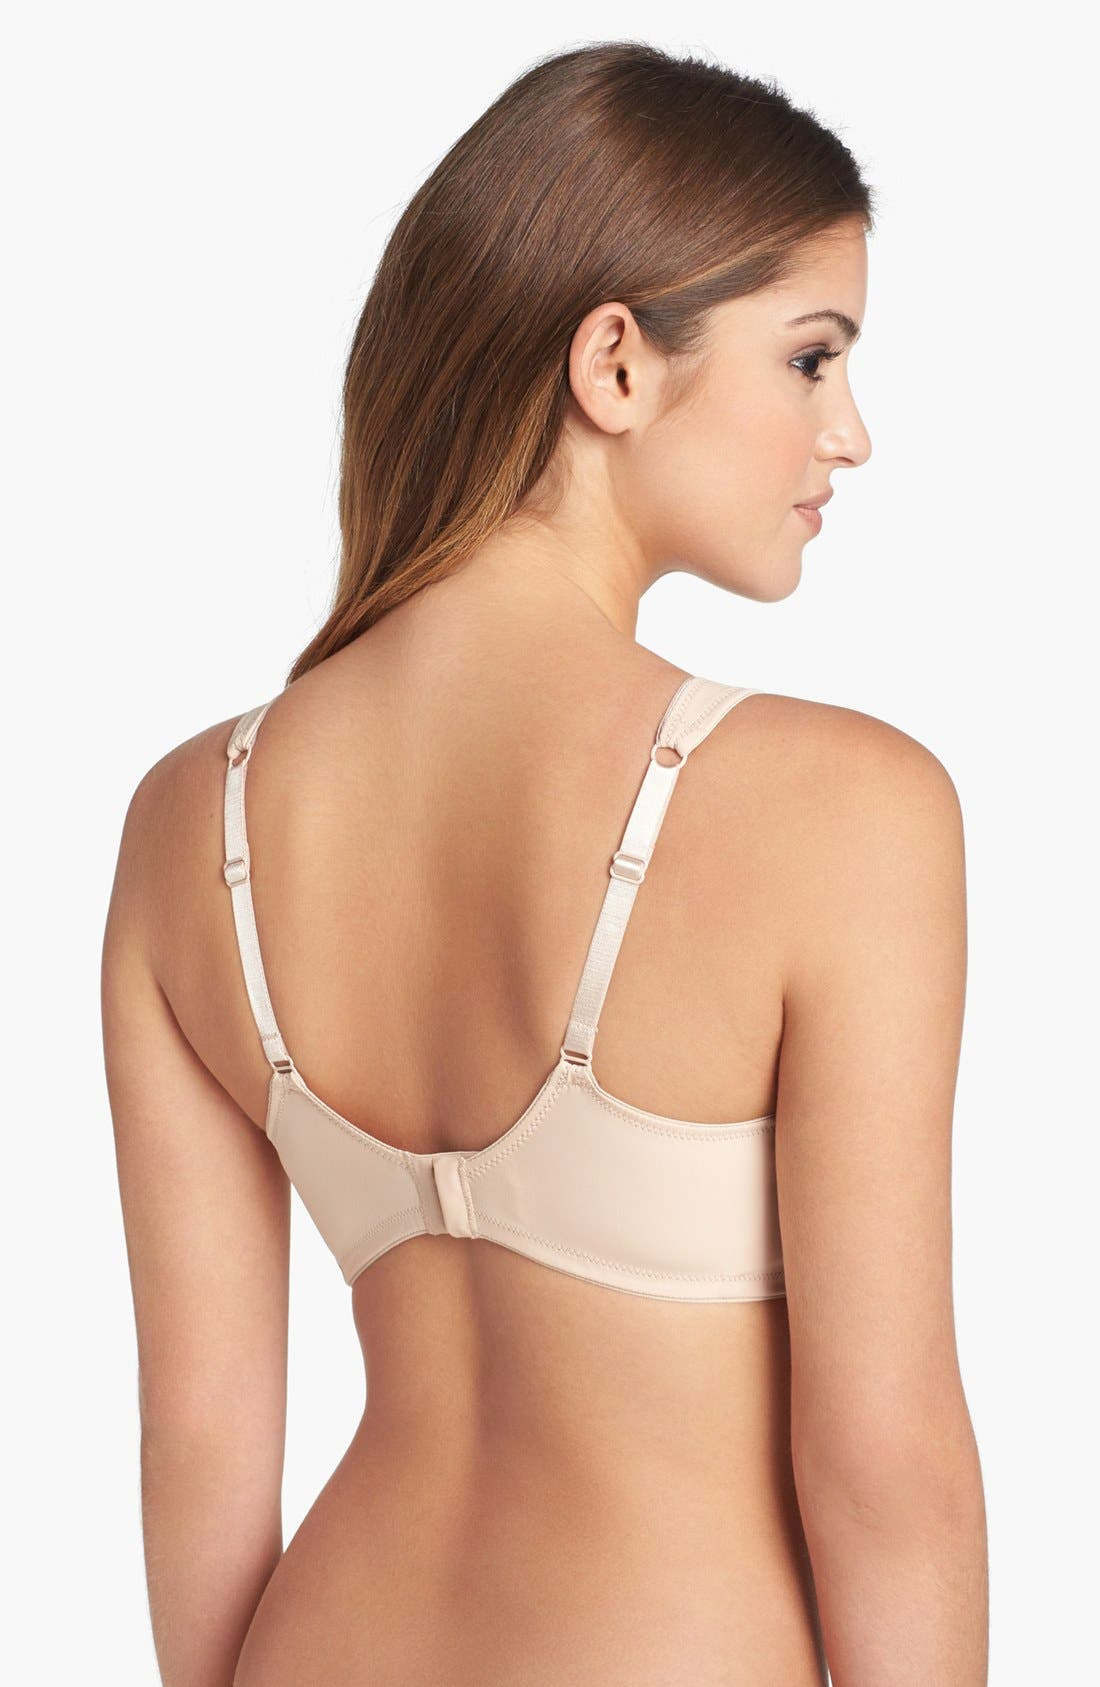 'Marlena' Seamless Soft Cup Bra,                             Alternate thumbnail 5, color,                             NUDE